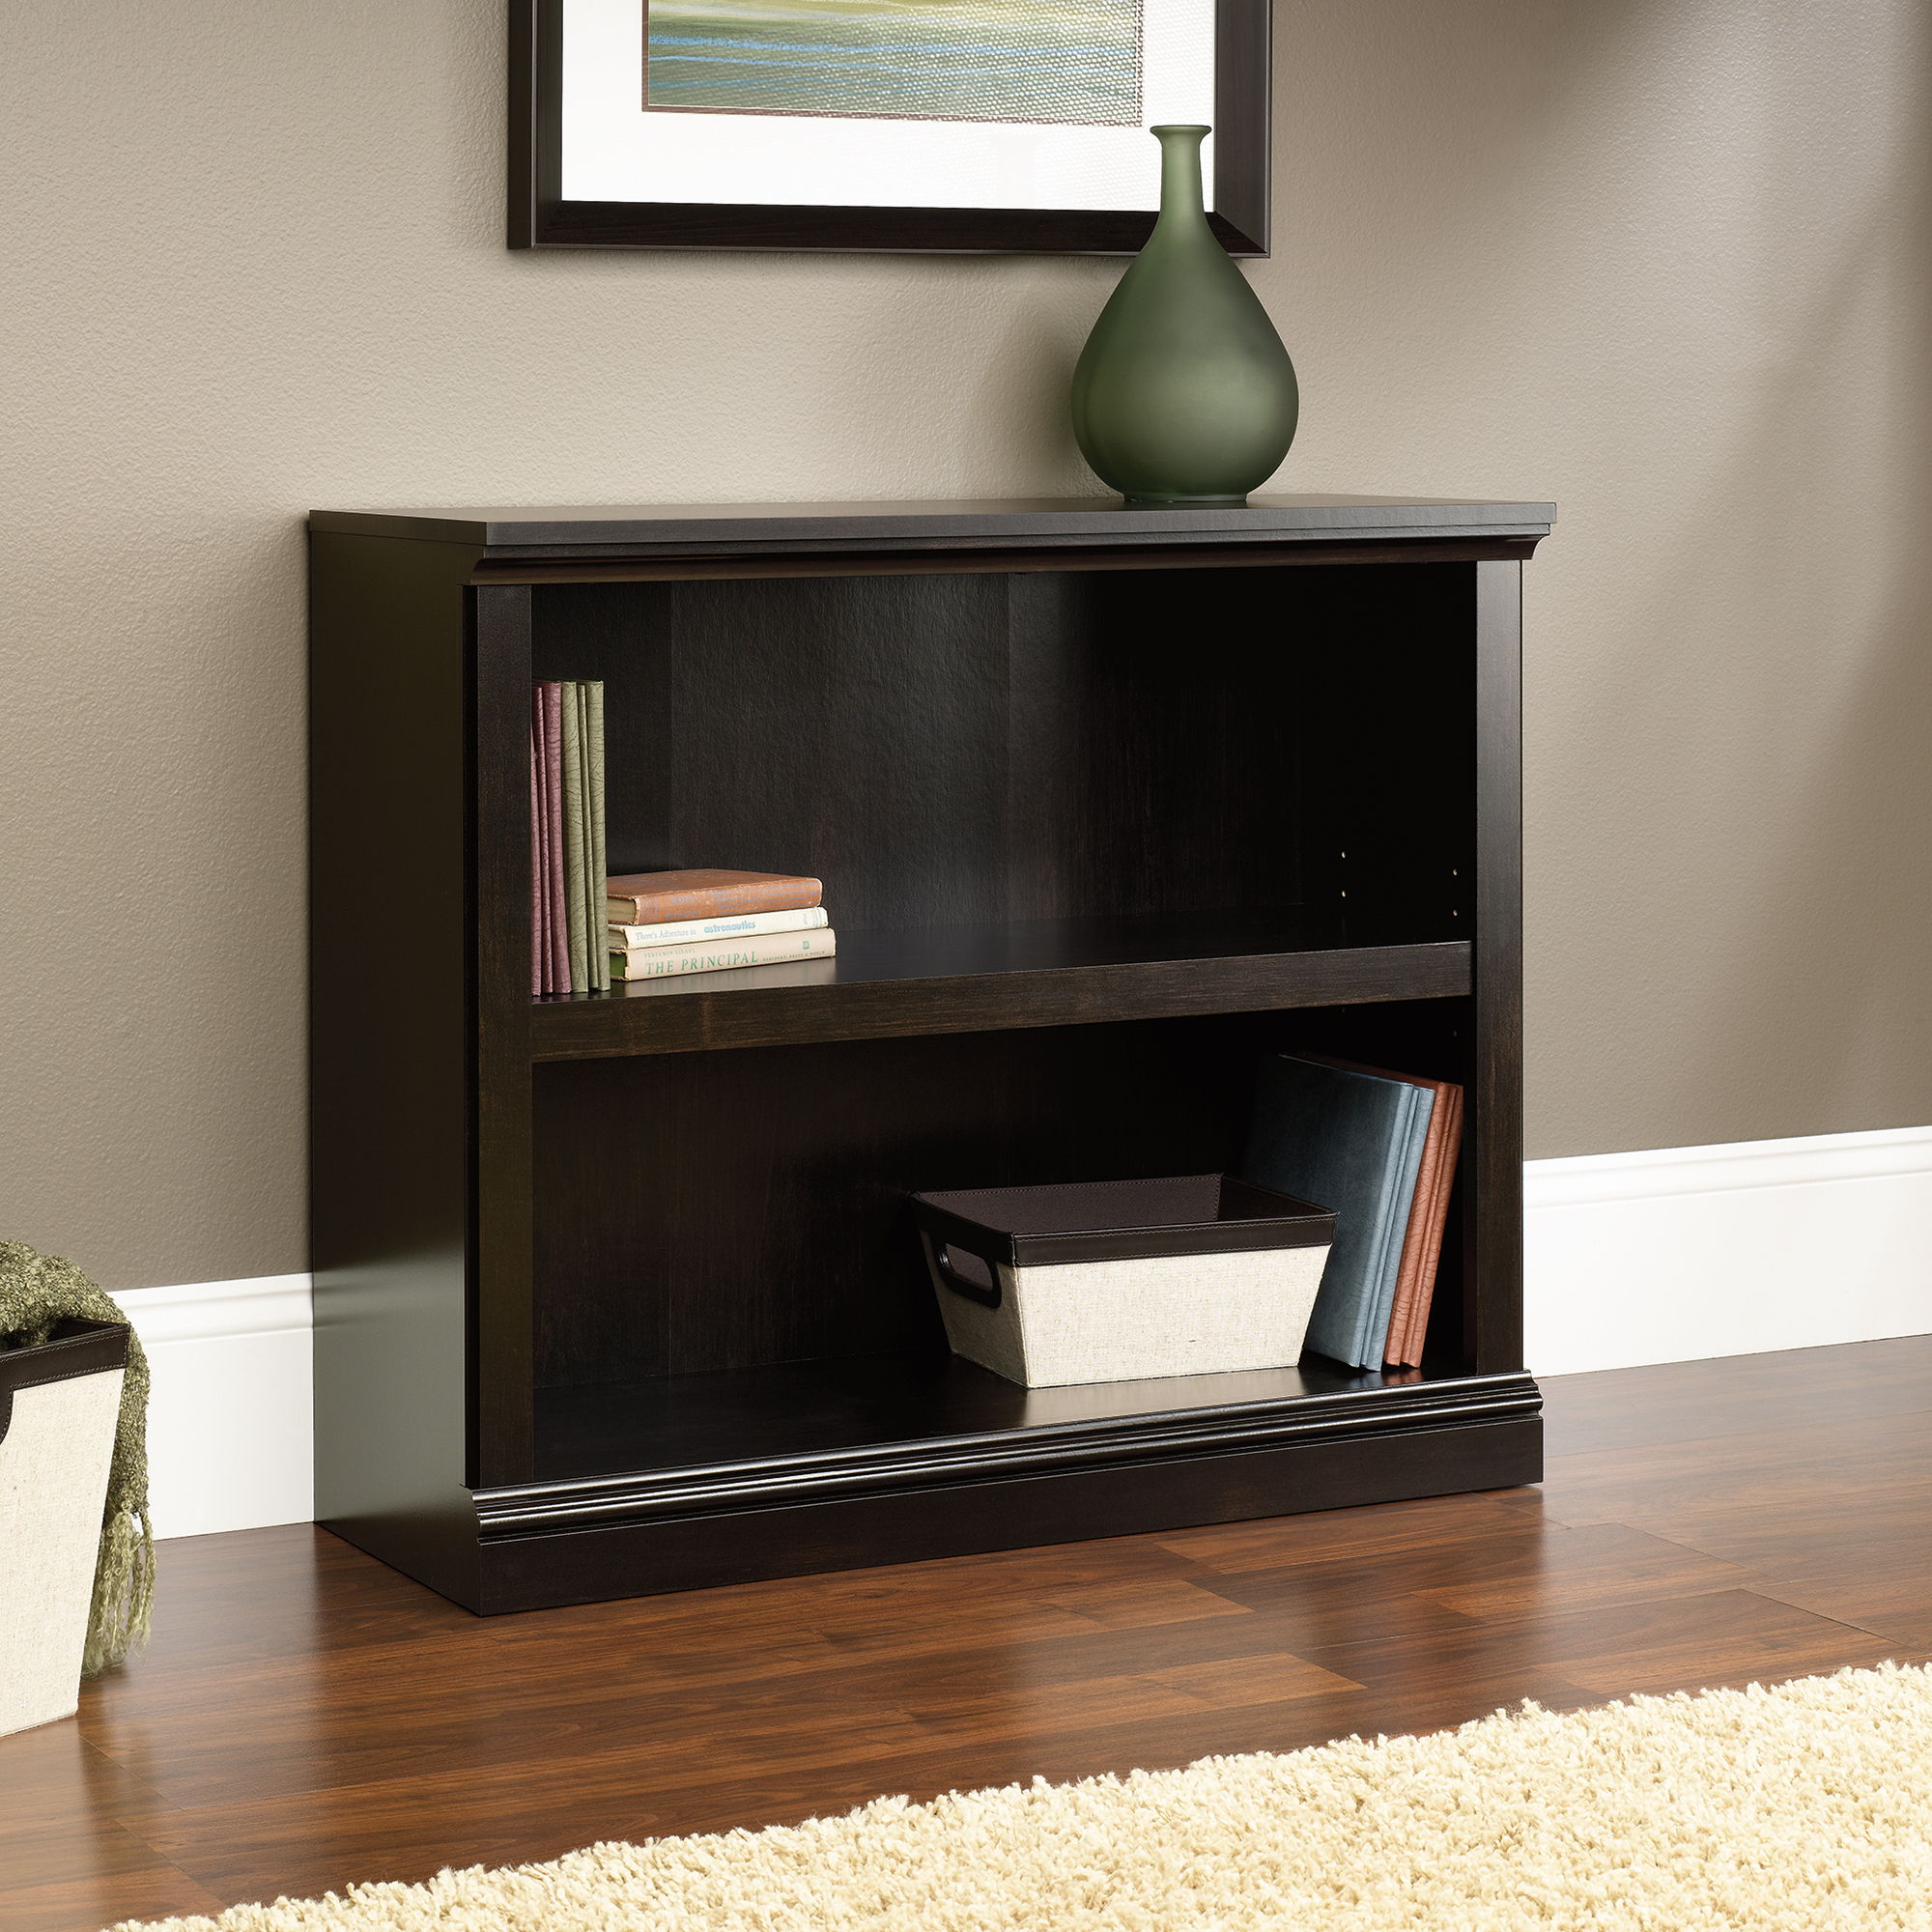 Amazing 2-Shelf Bookcase ... sauder 2 shelf bookcase